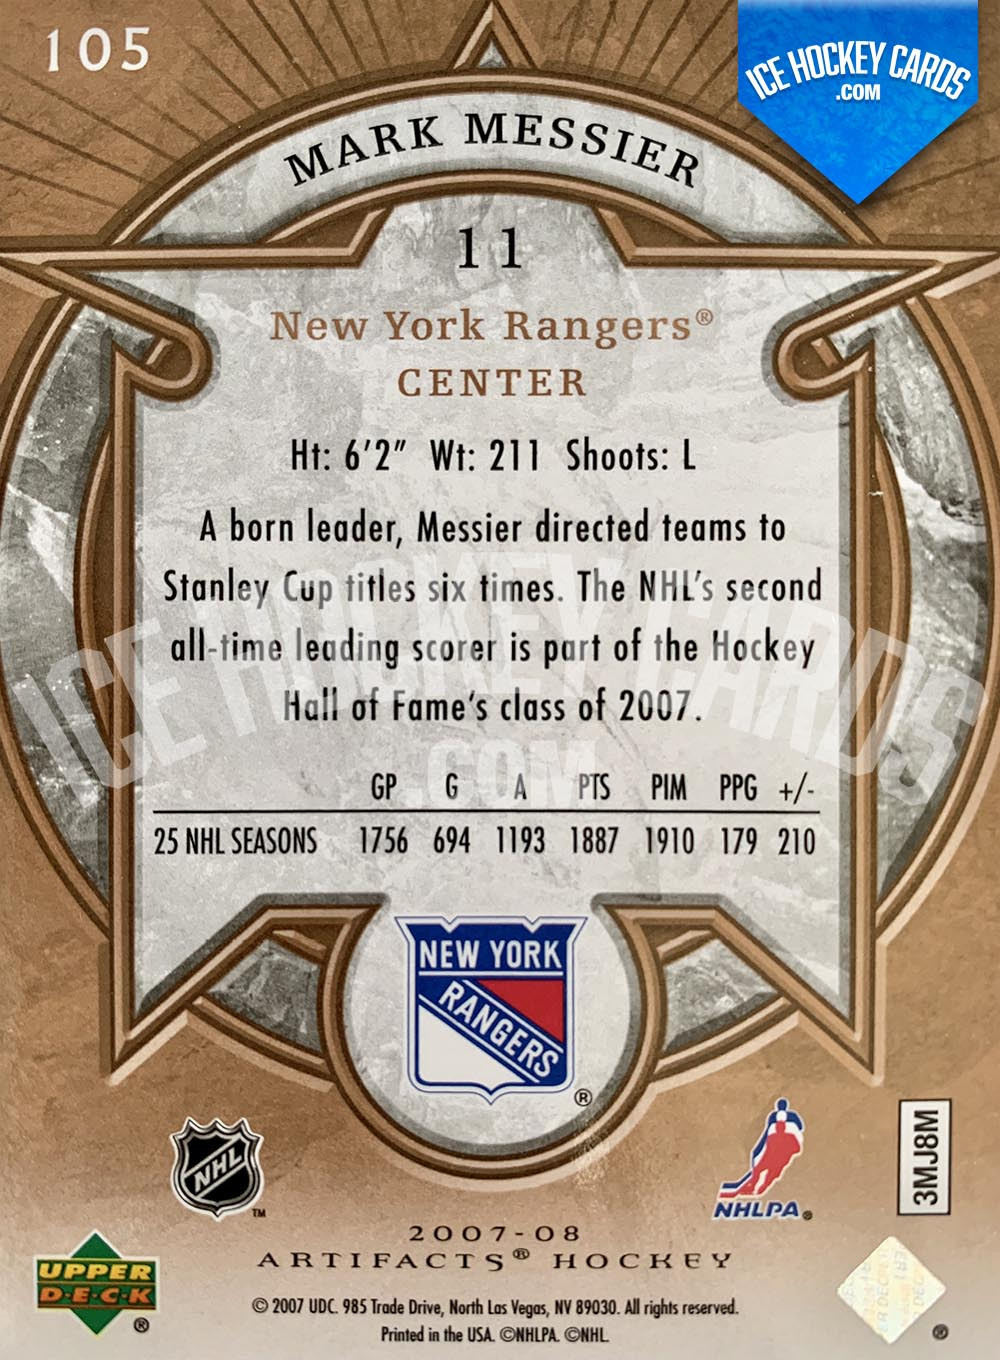 Upper Deck - Artifacts 2007-08 - Mark Messier Legends Card back